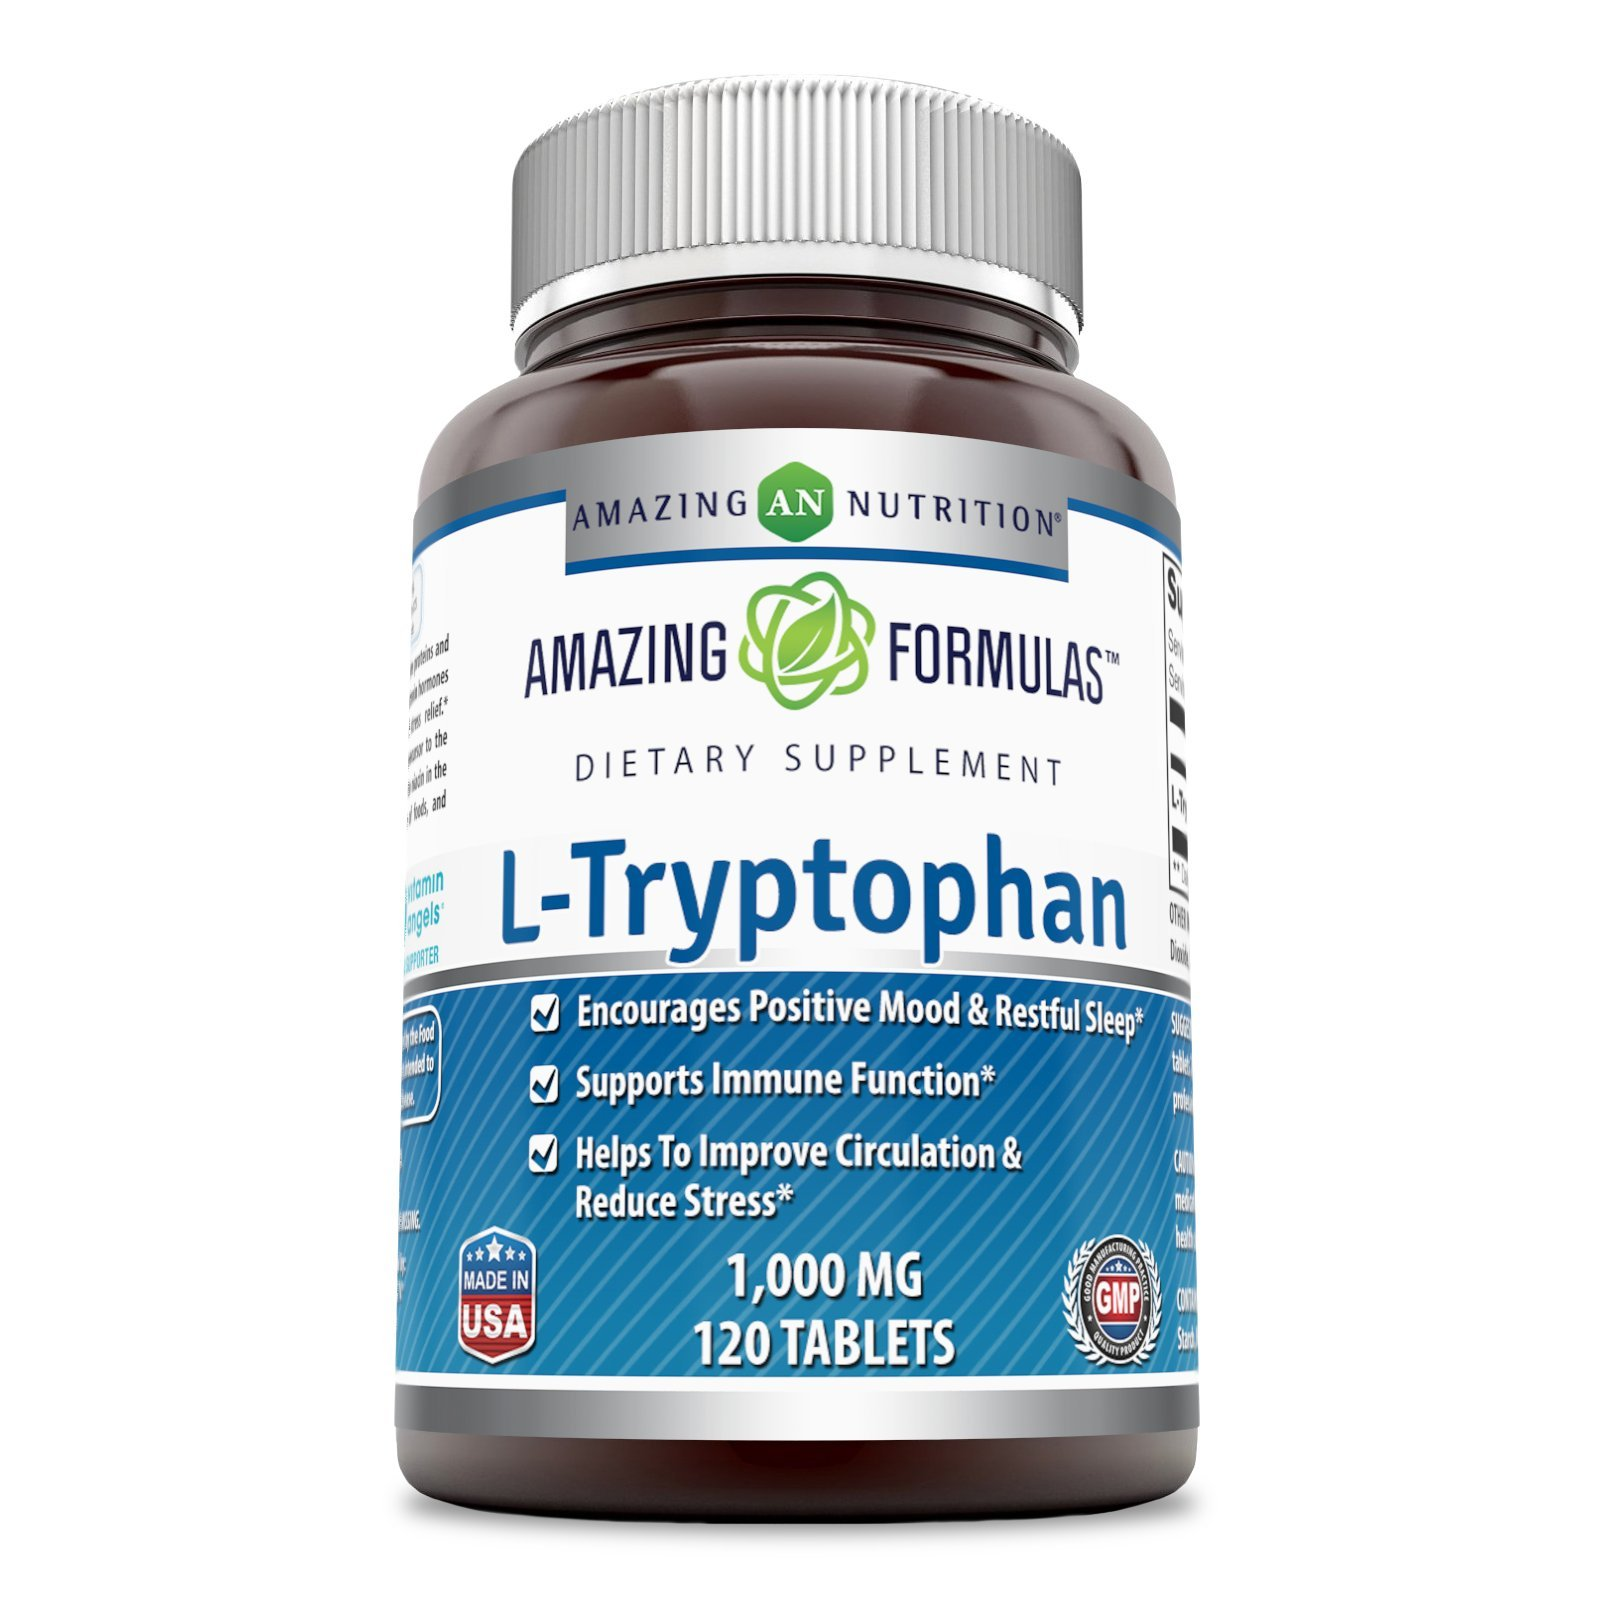 Amazing Formulas L-Tryptophan - 1000 Mg, 120 Tablets - Encourages Positive Mood & Restful Sleep - Supports Immune Function - Helps to Improve Circulation & Reduce Stress.